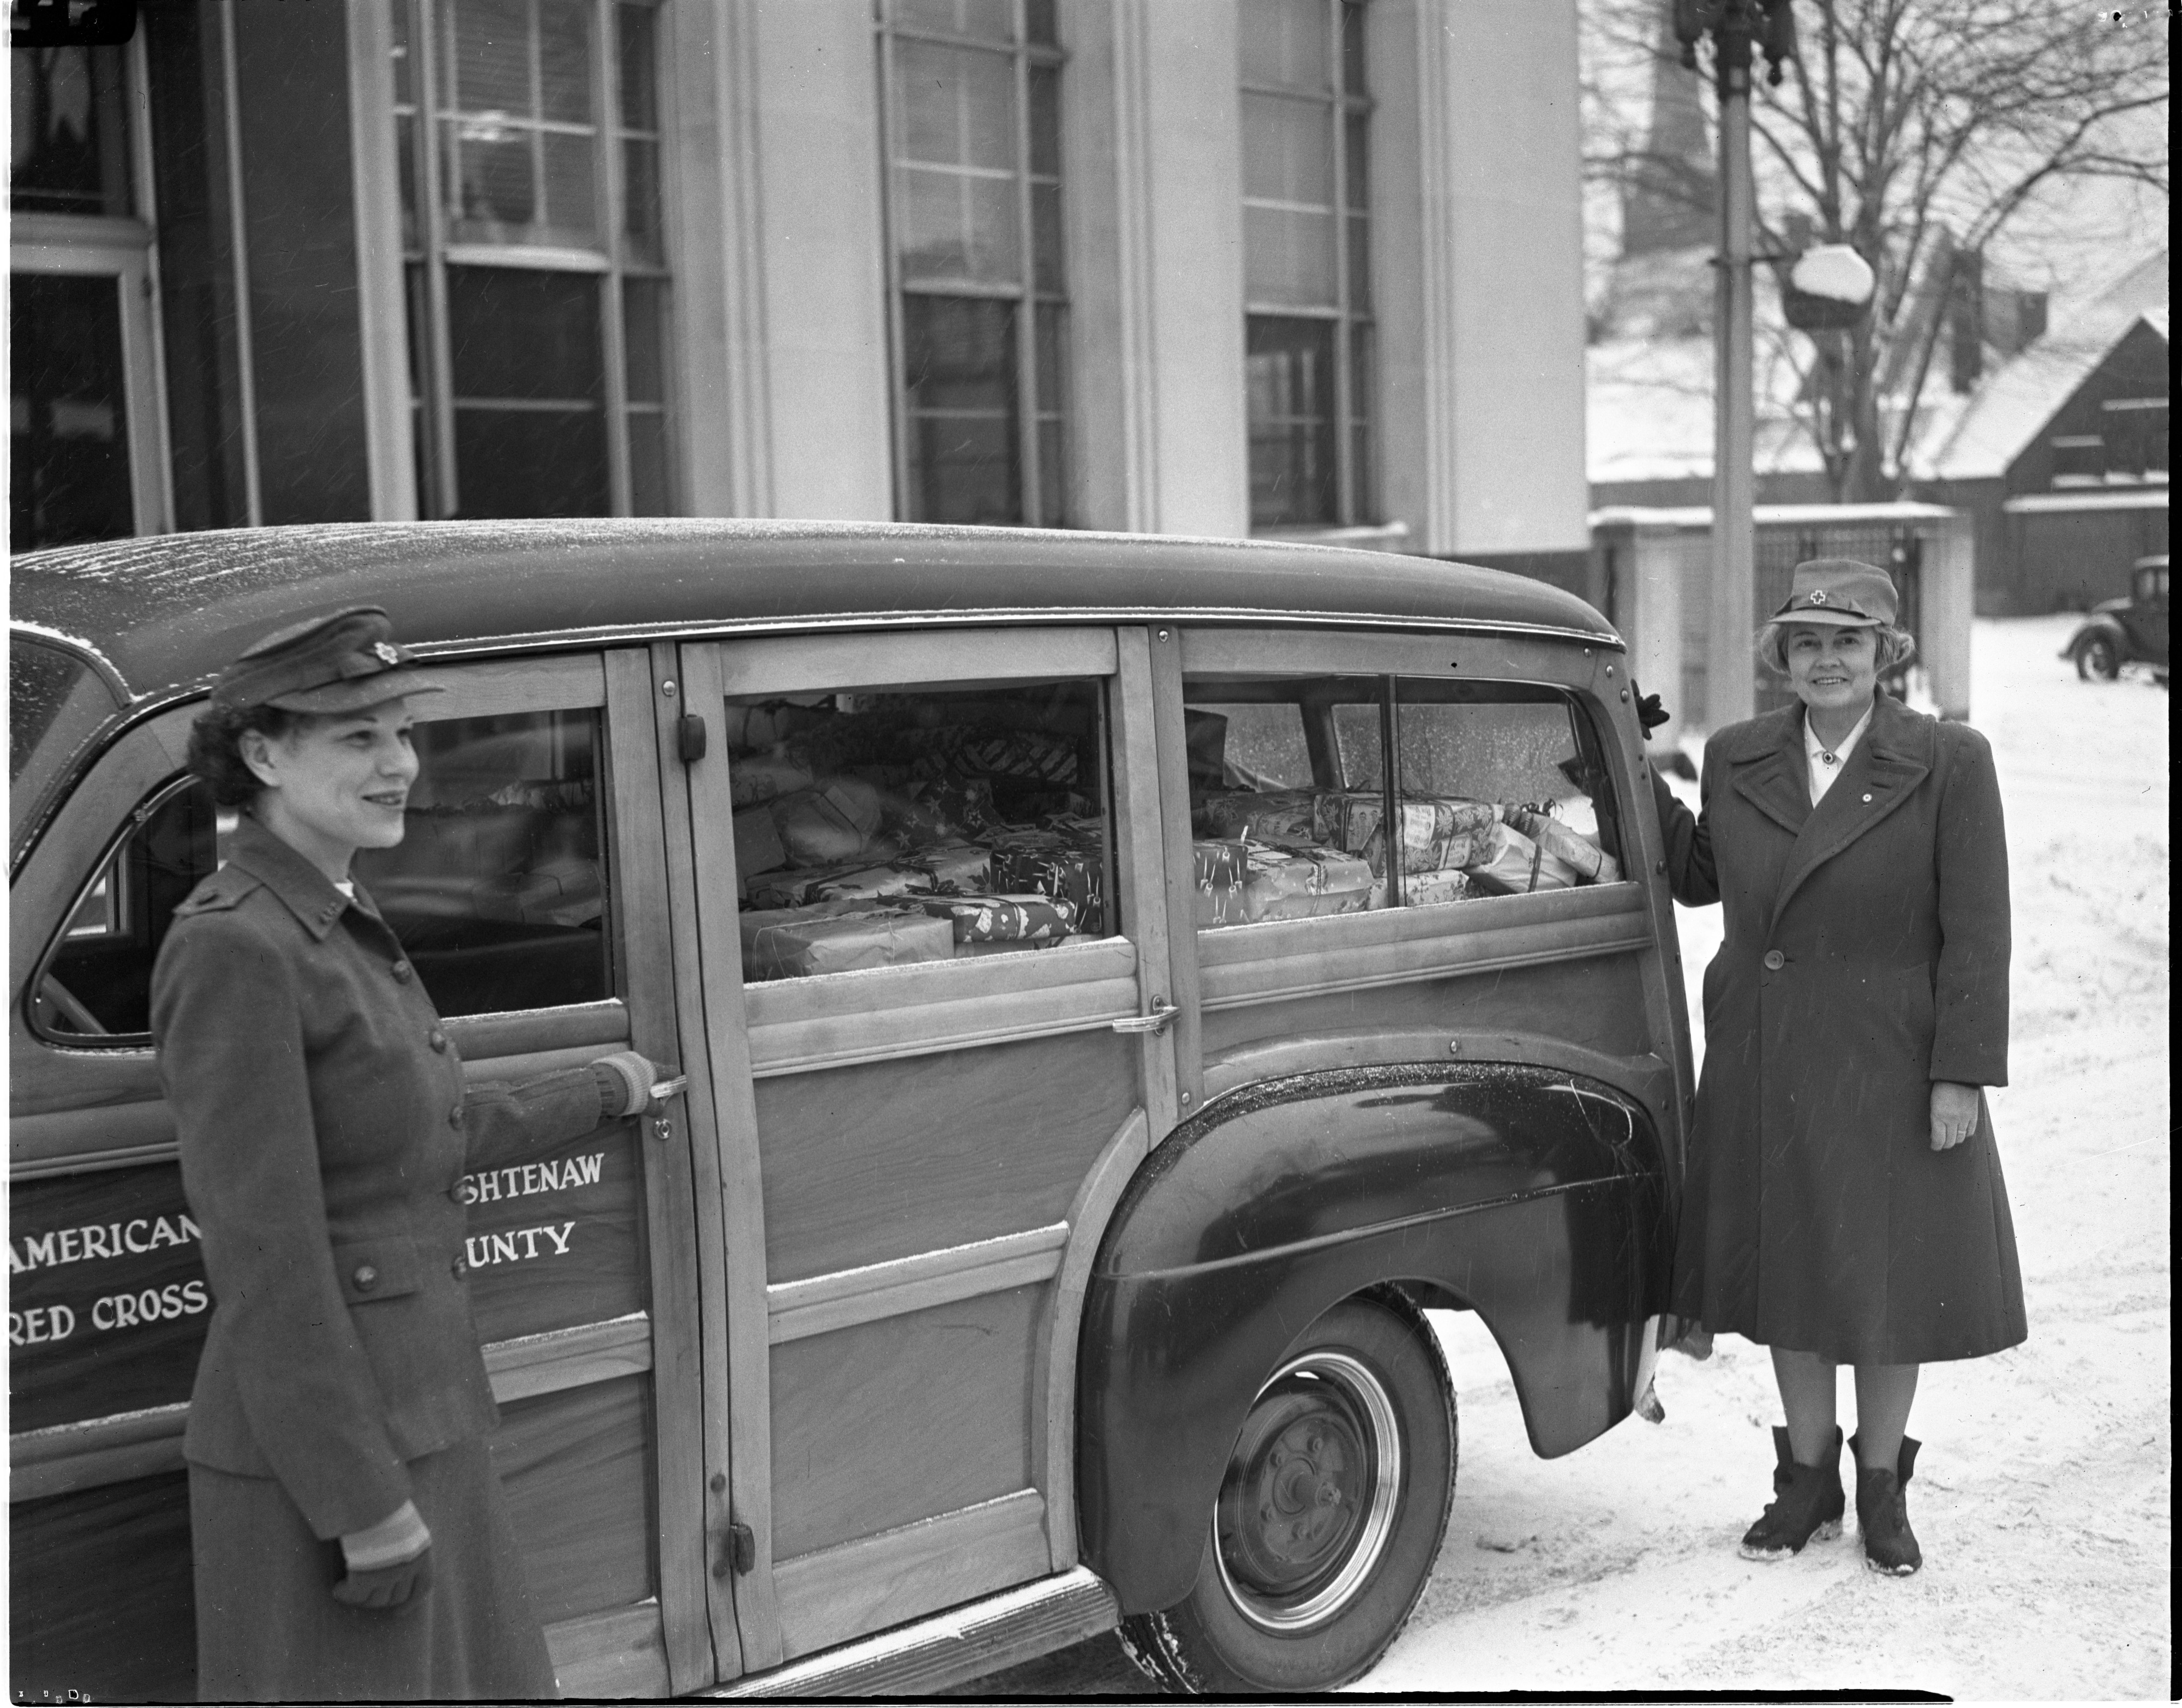 Washtenaw County Red Cross Bus Filled With Christmas Gifts For Percy Jones Patients, Undated image